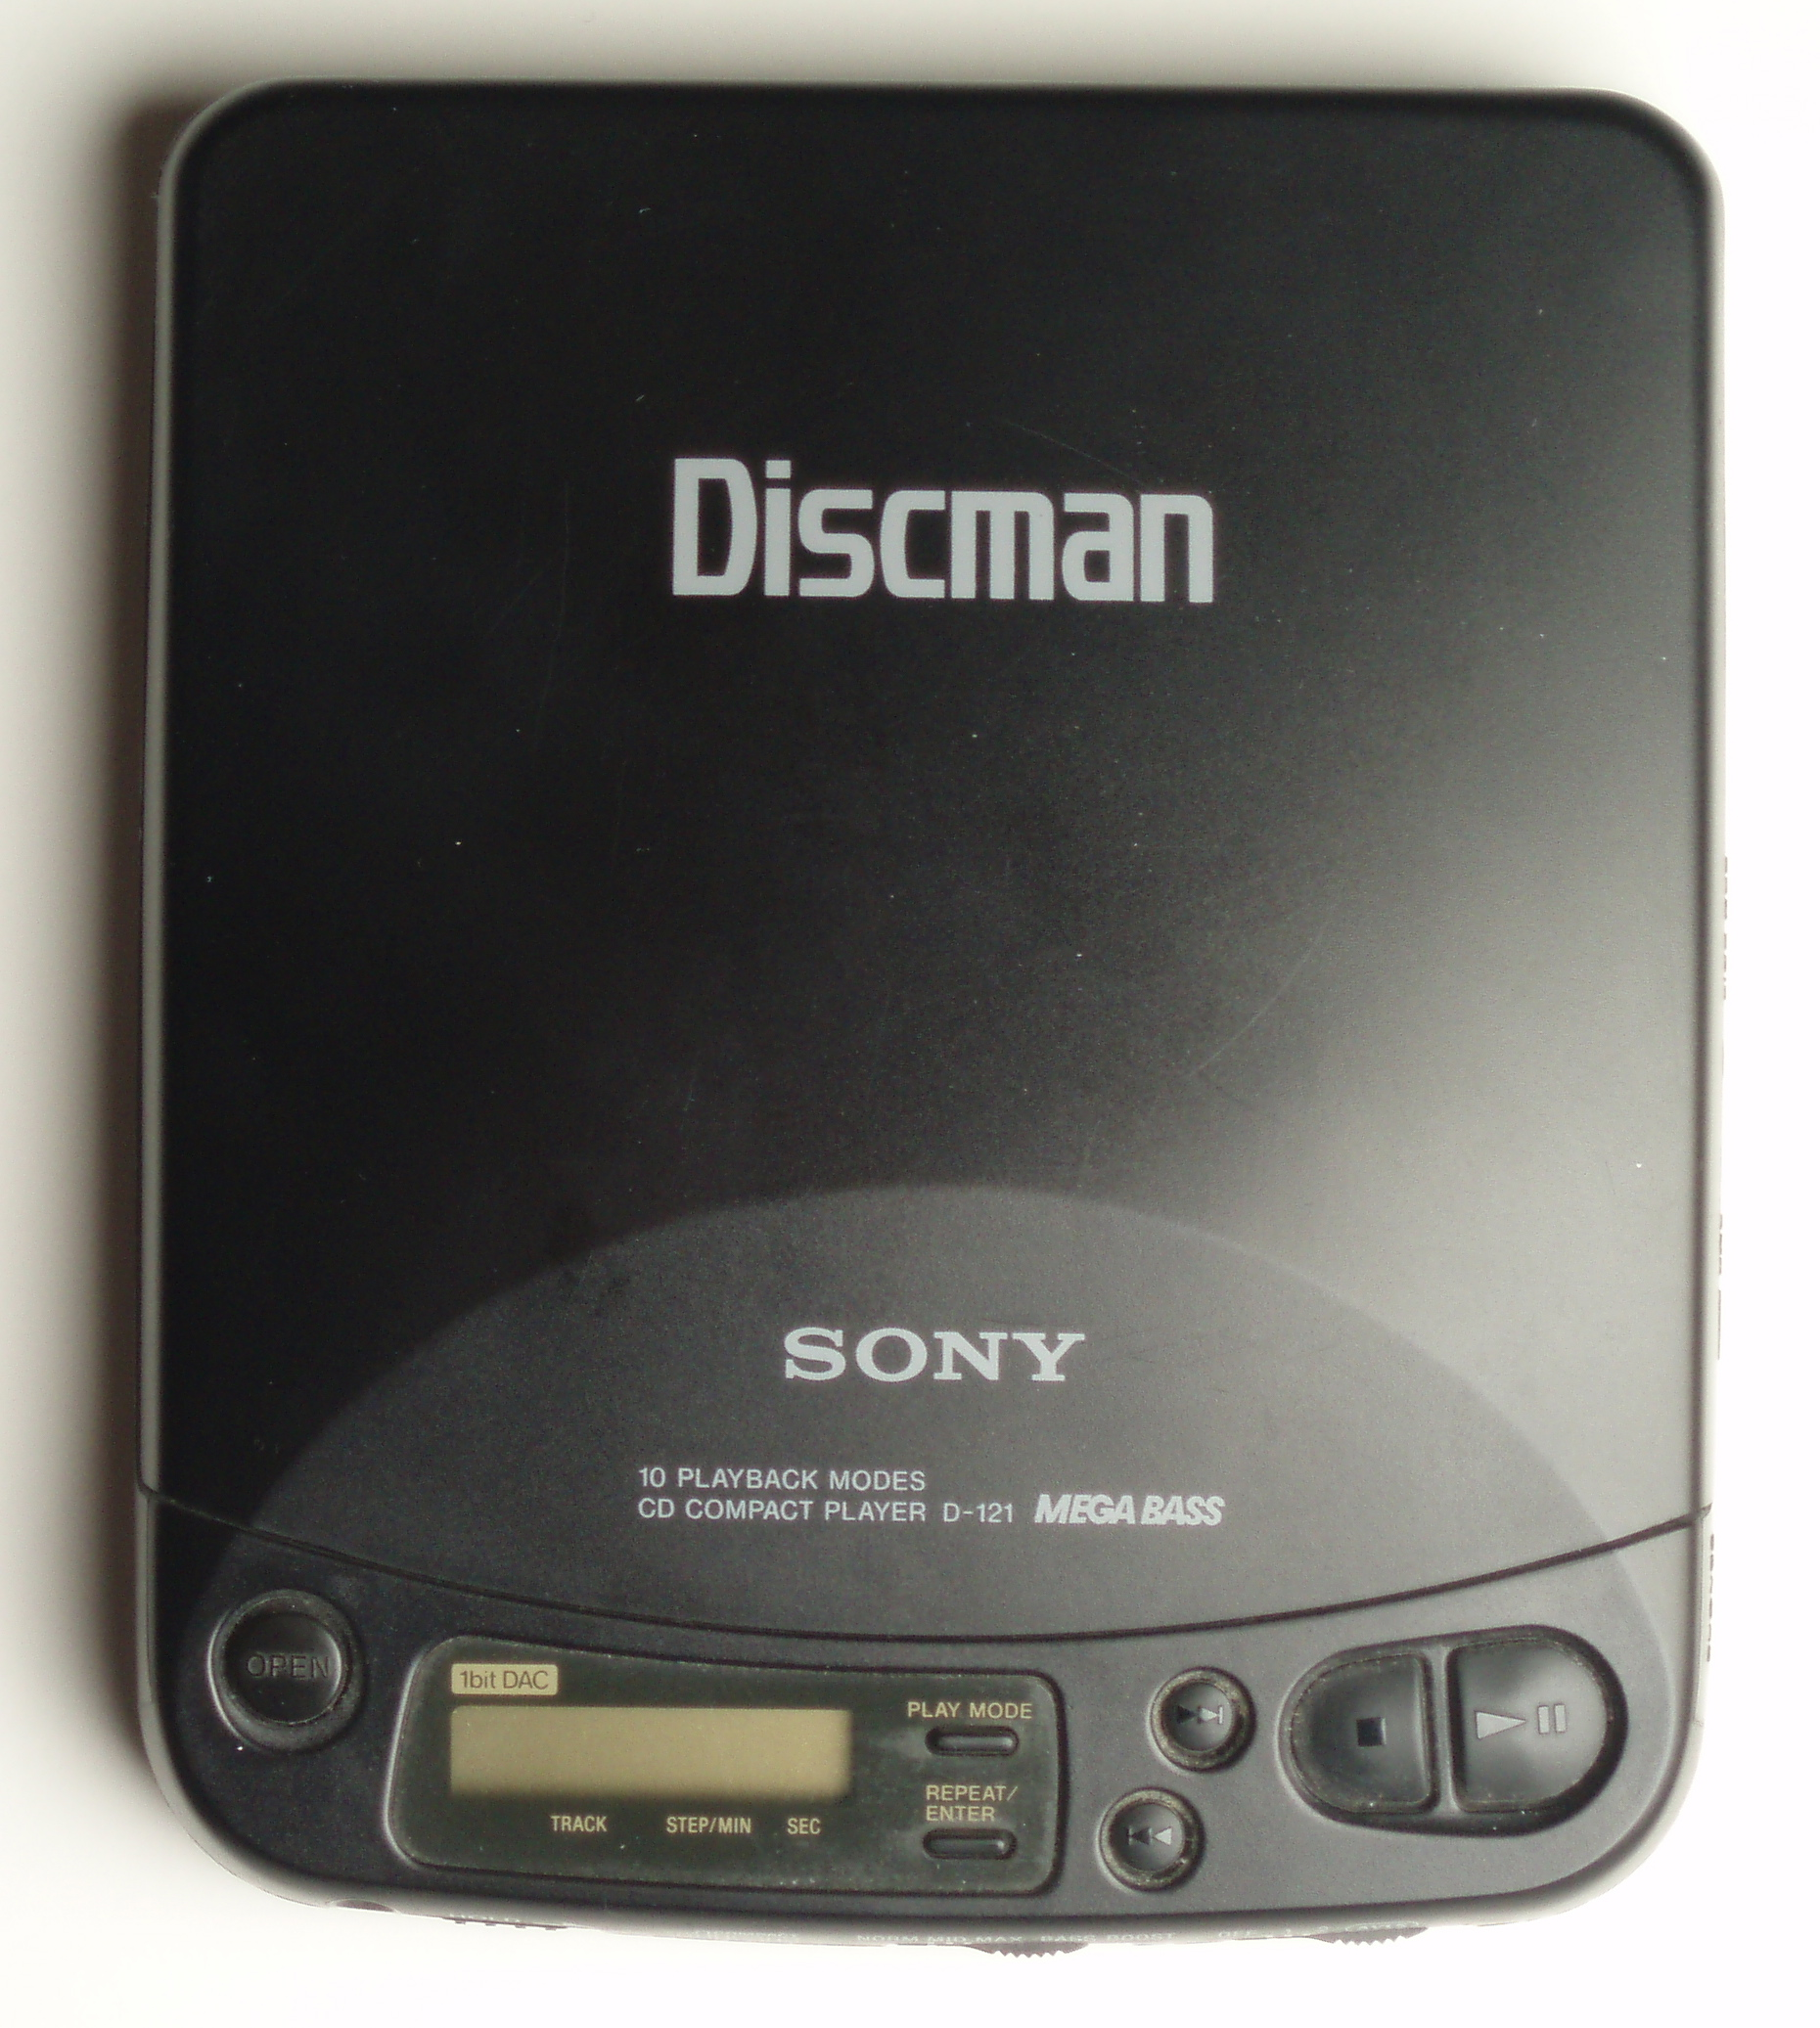 http://upload.wikimedia.org/wikipedia/commons/d/d5/Discman_D121.jpg